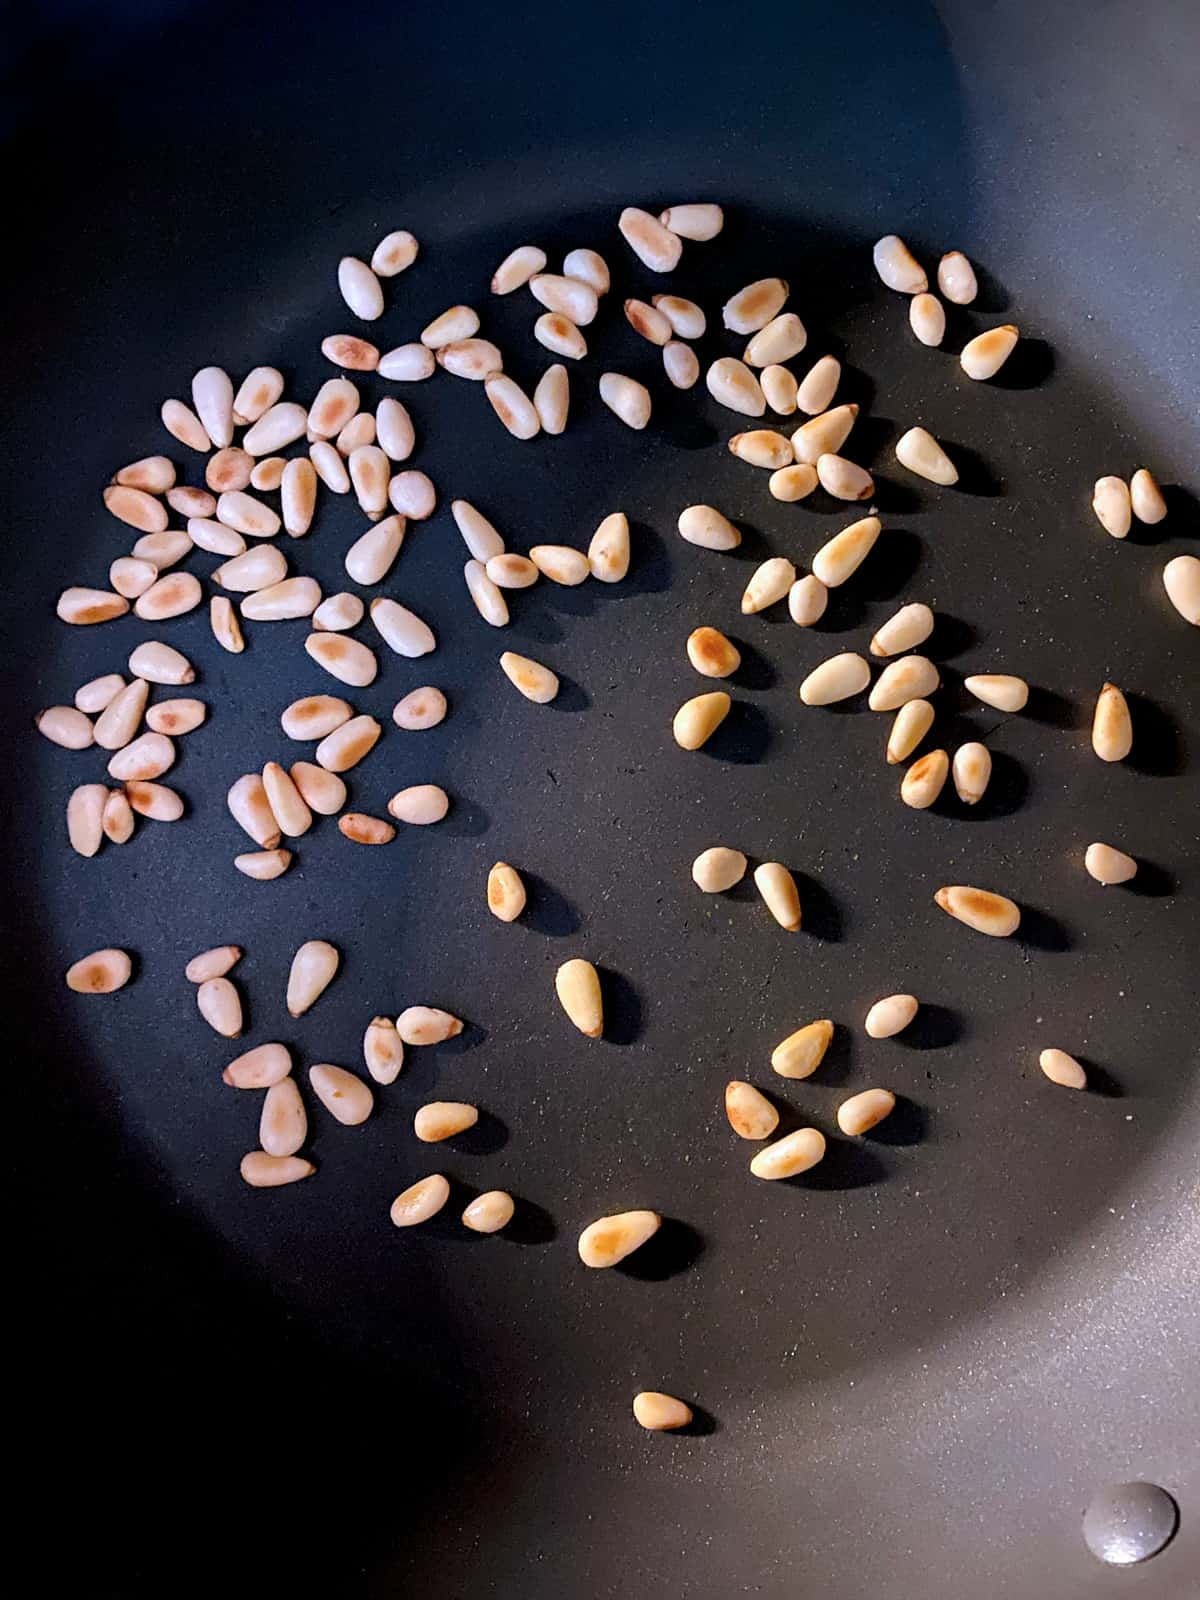 Pine nuts in a pan.